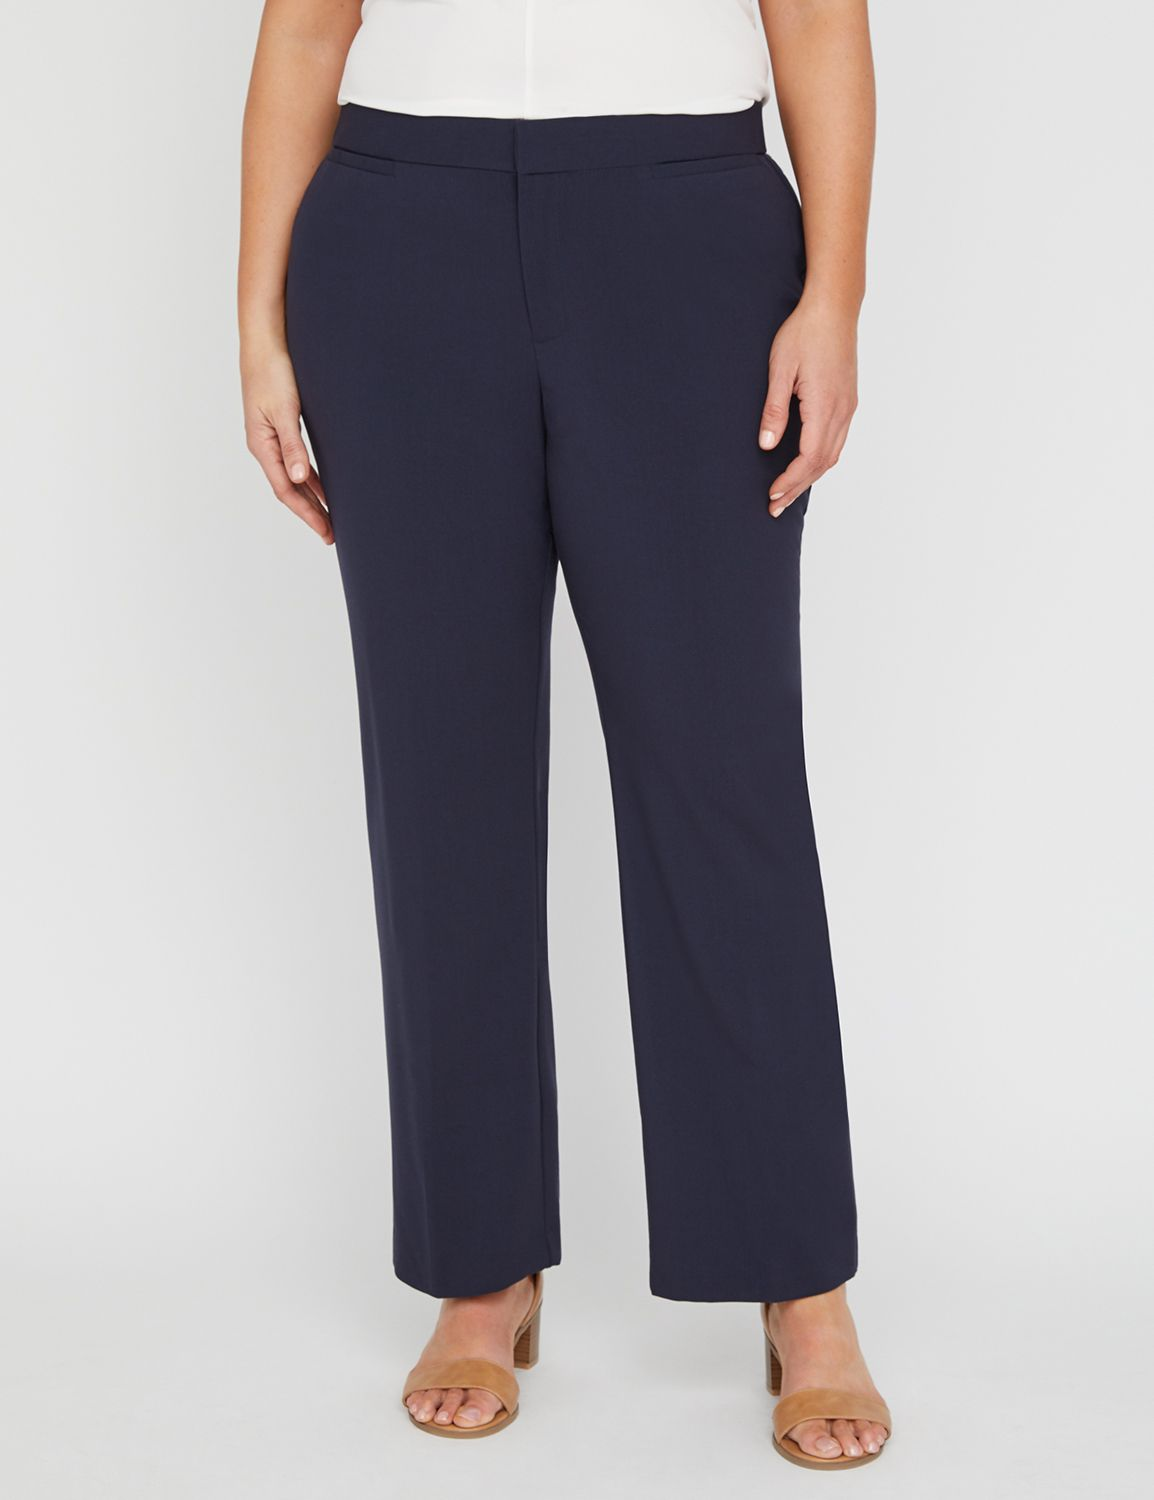 Right Fit Pant (Moderately Curvy) Right Fit Pant (Moderately Curvy) MP-300043666